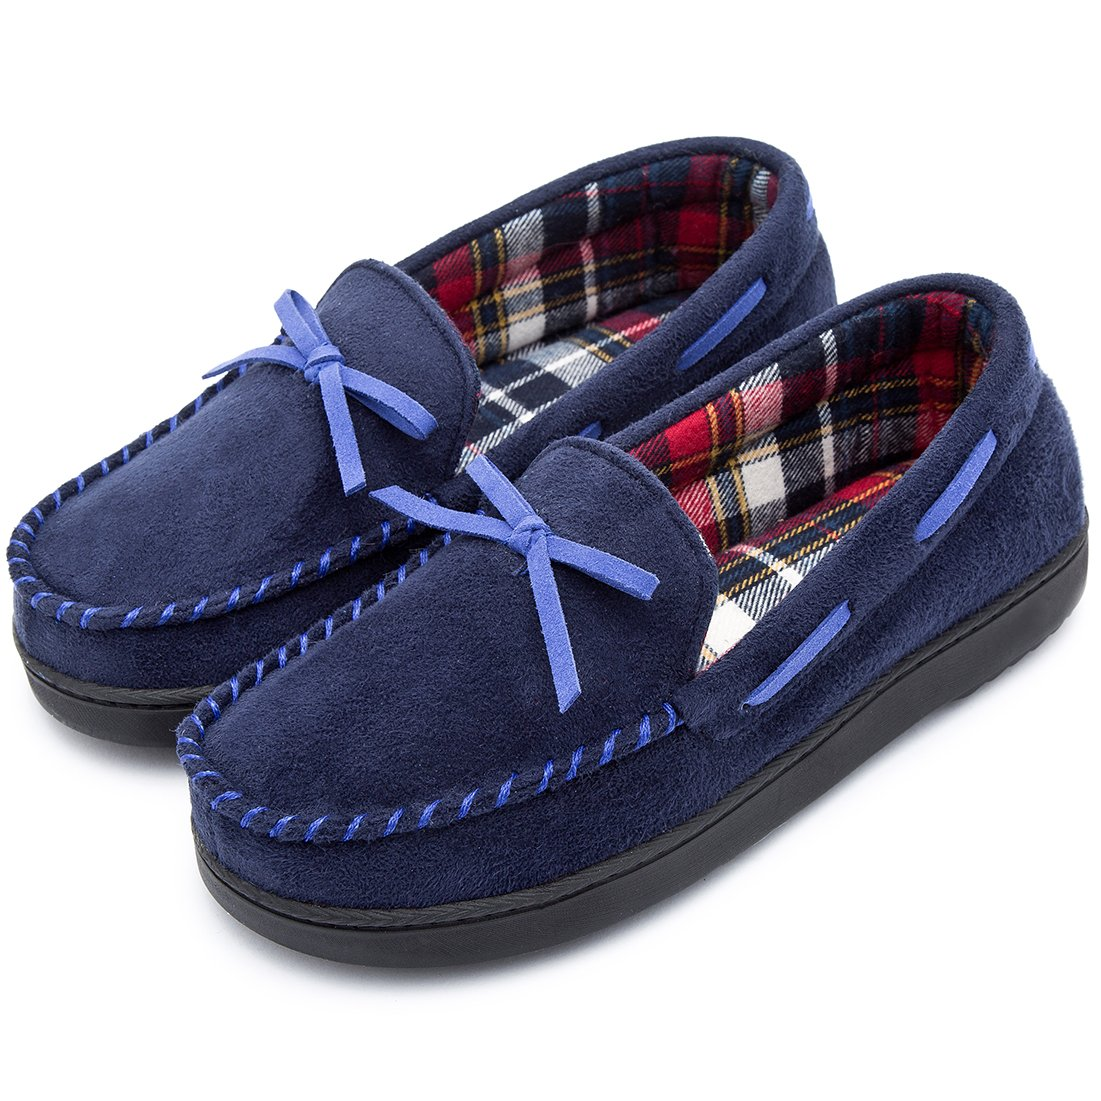 RockDove Women's Memory Foam Moccasin Slippers with Plaid Lining (9 B(M) US, Dark Blue)